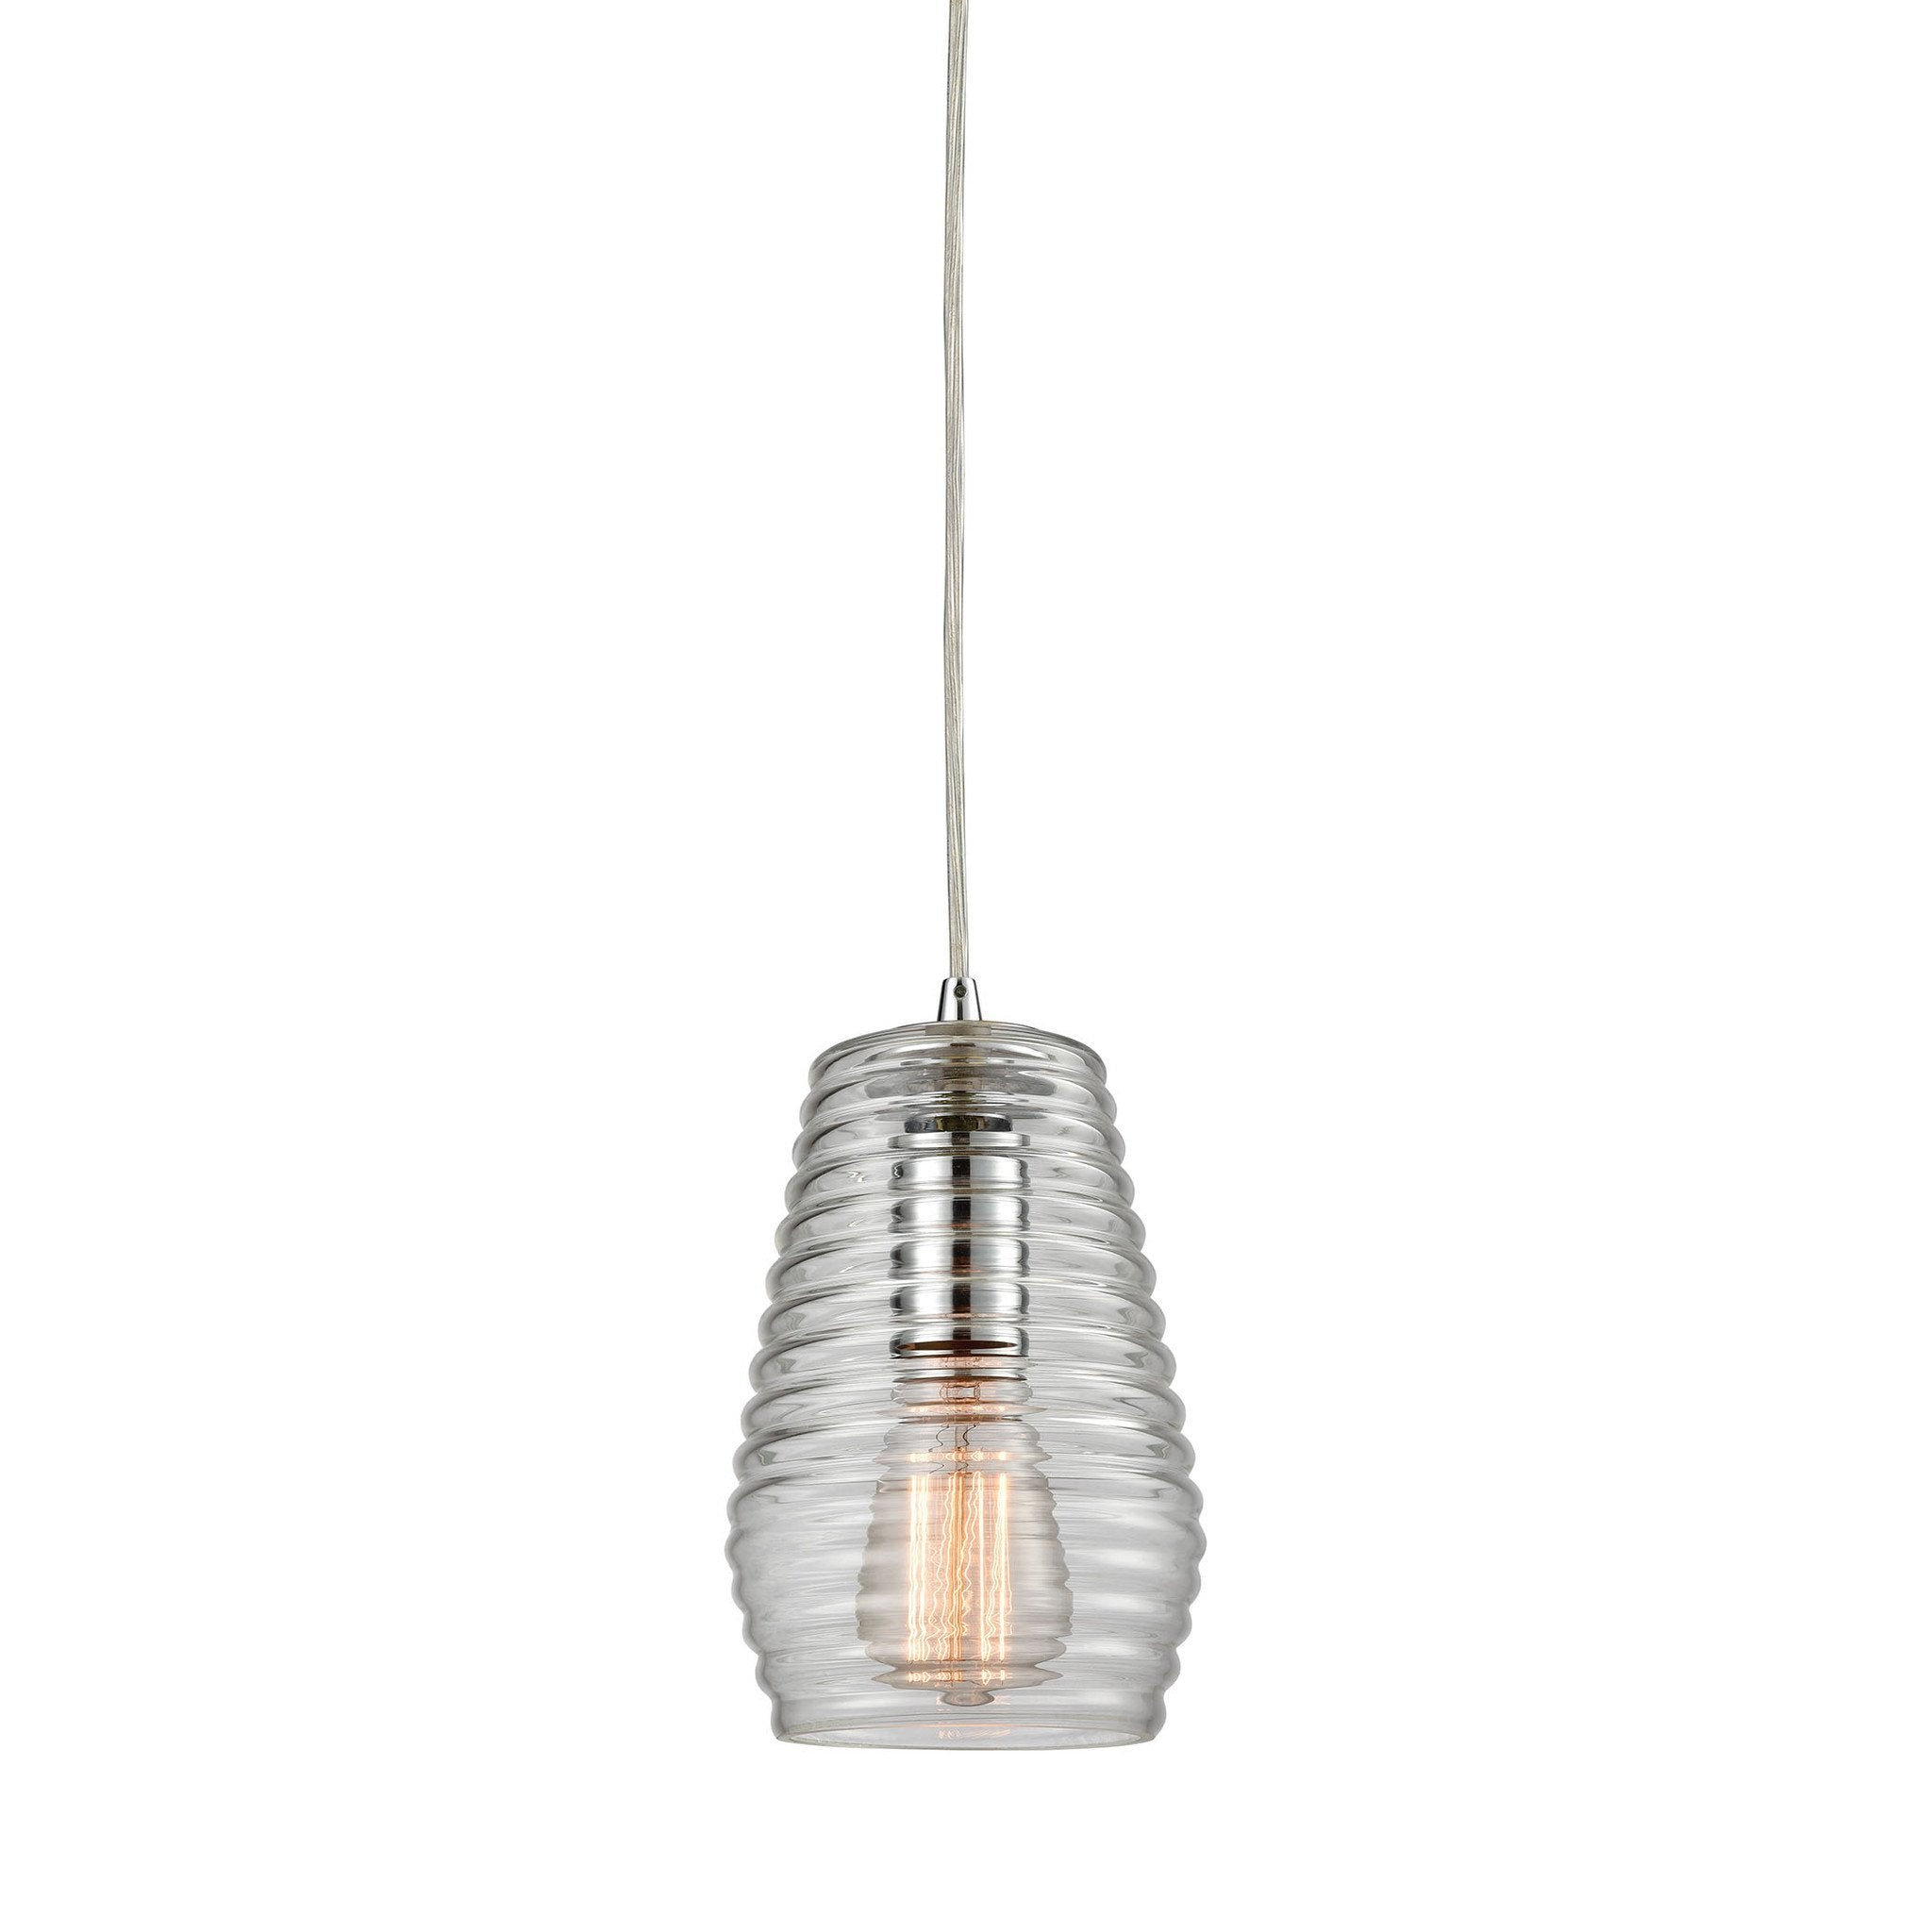 ELK Lighting 10523/1 Ribbed Glass Collection Polished Chrome Finish